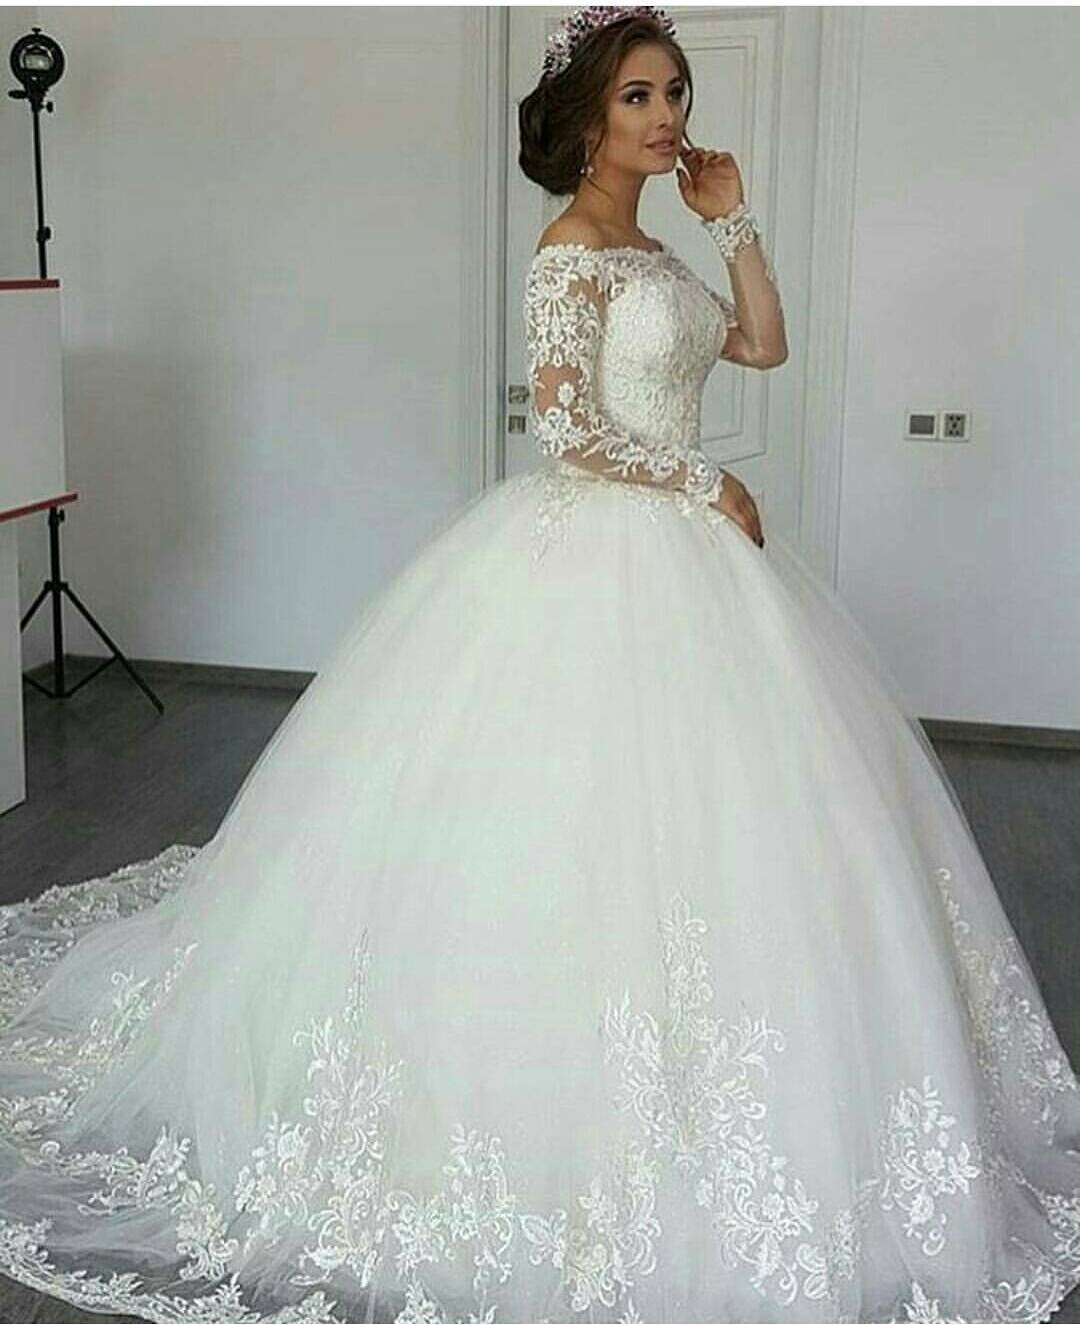 Pictures Of Ball Gown Wedding Dresses: Long Sleeve Wedding Dress, Ivory Wedding Dress, Wedding